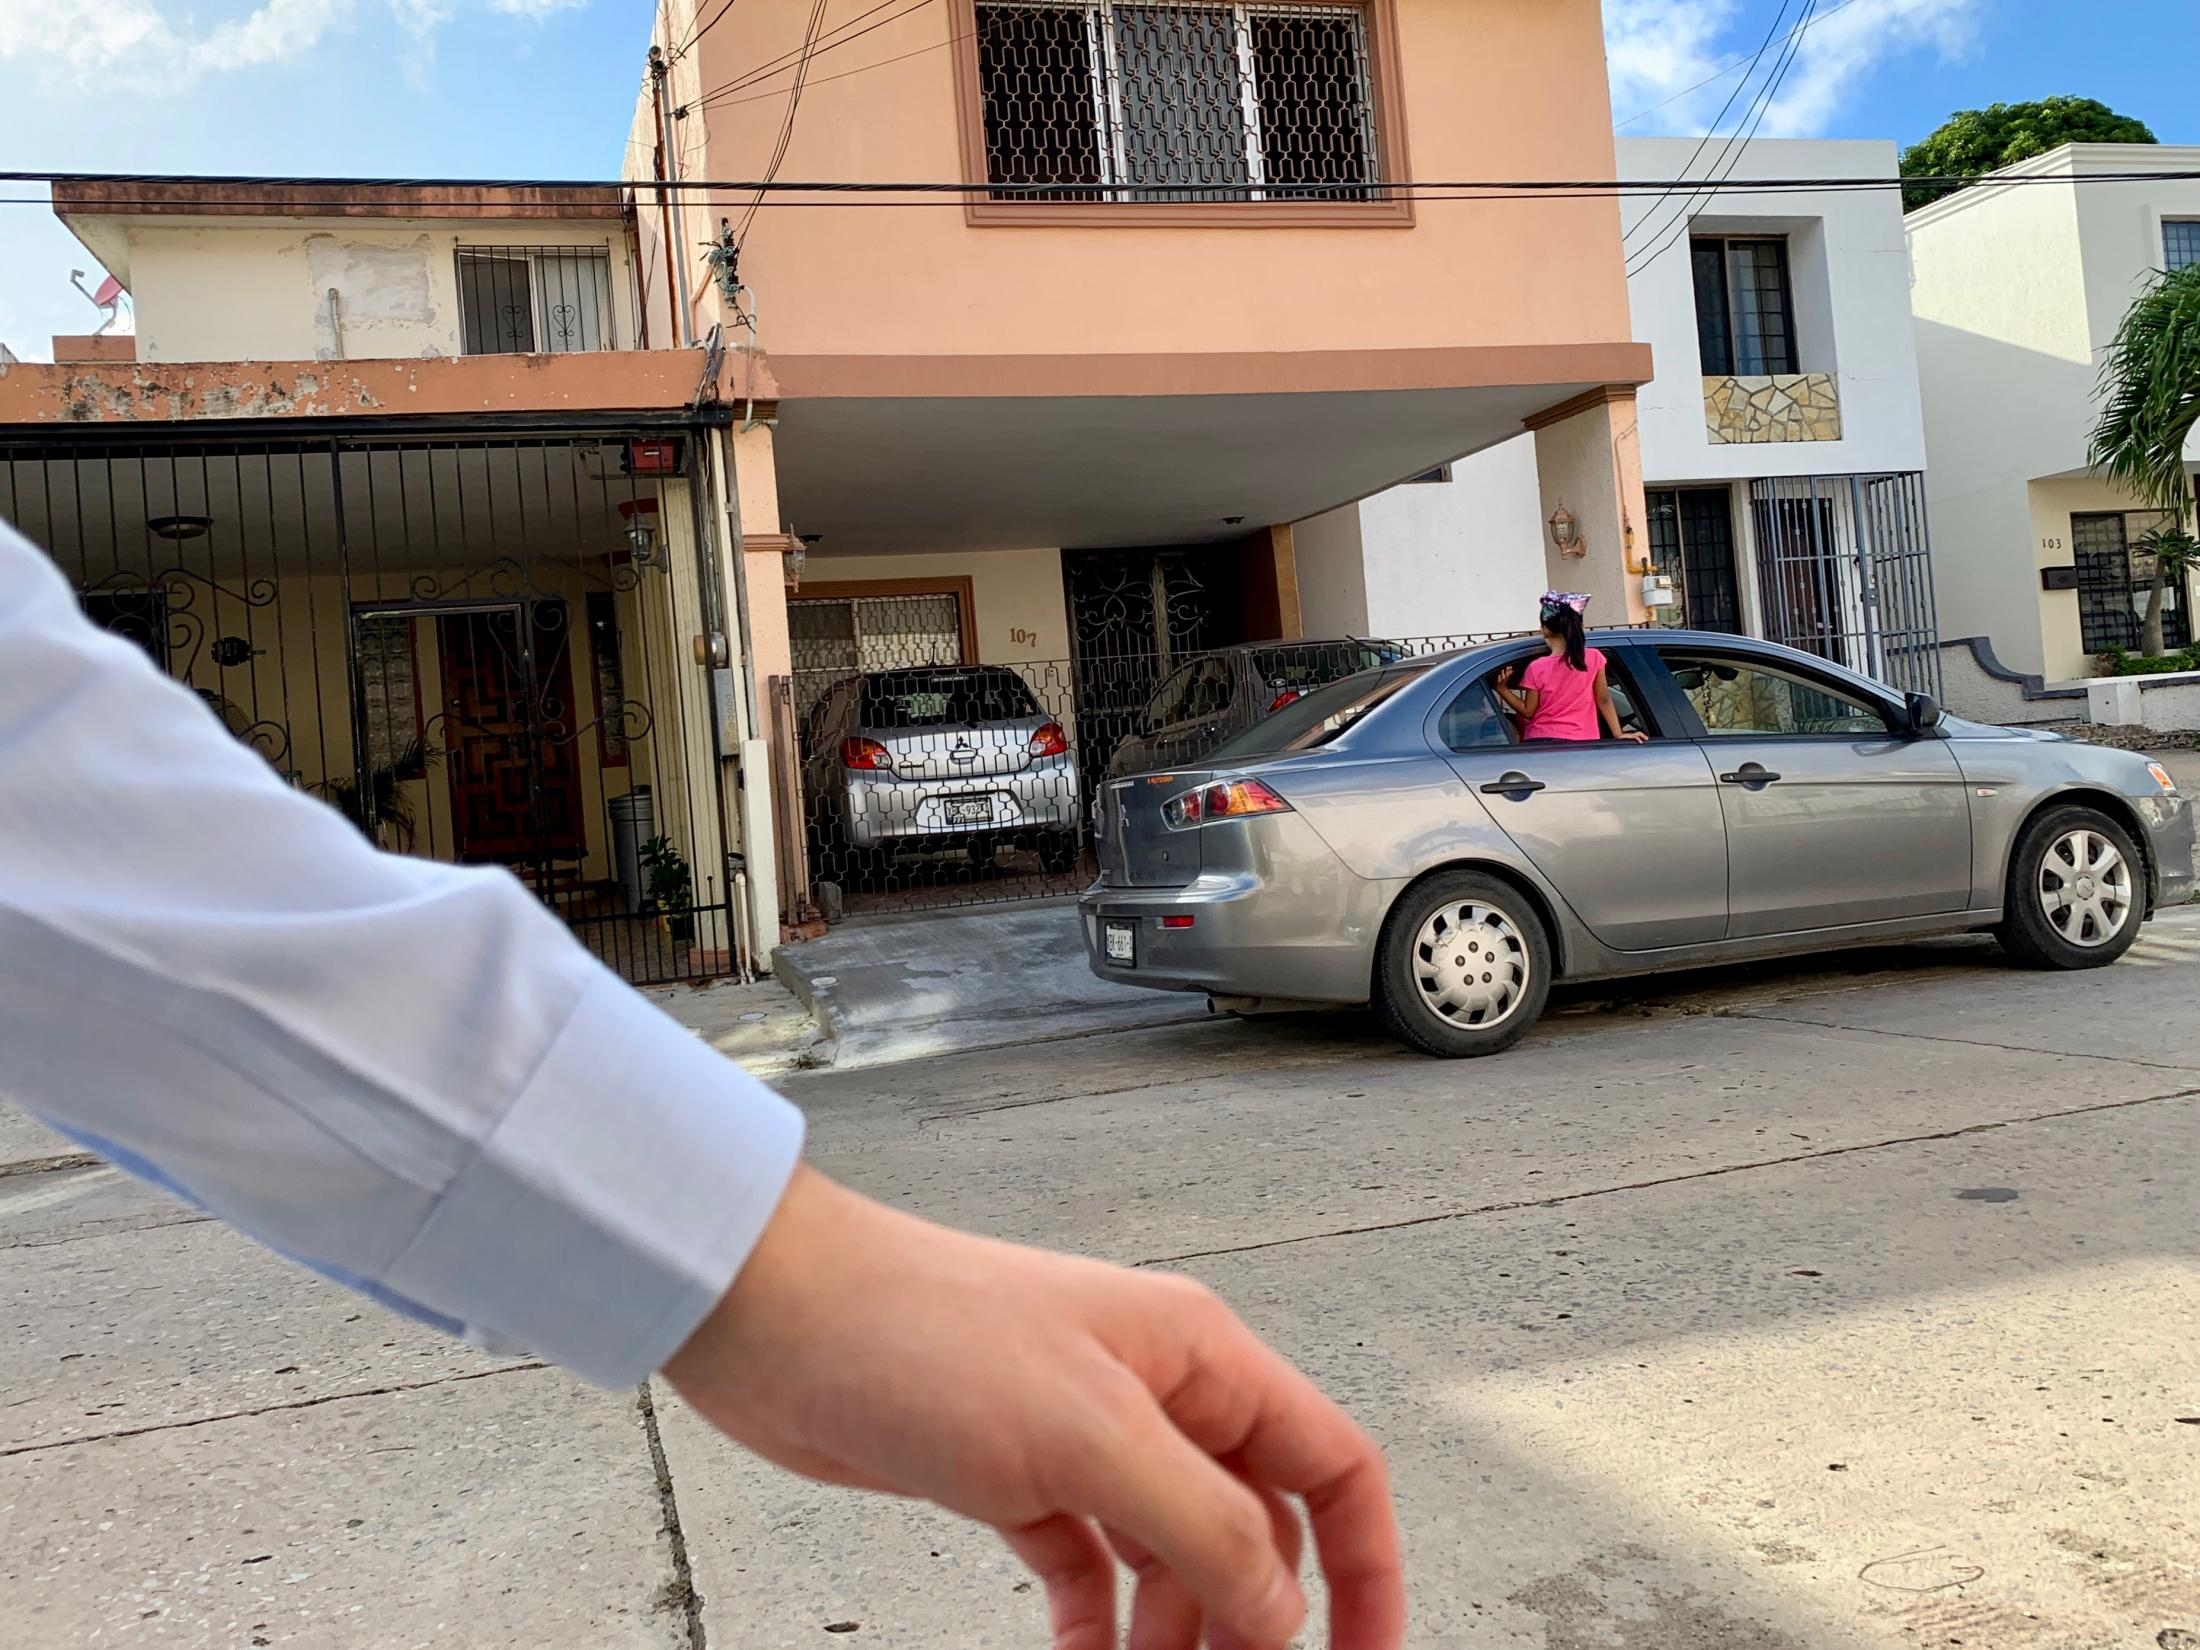 Tampico, Tamaulipas México. 2019. Arm and hand get in the way of the image of a little girl sitting on her window looking at the house next to her. I had just finished working and was walking back home.